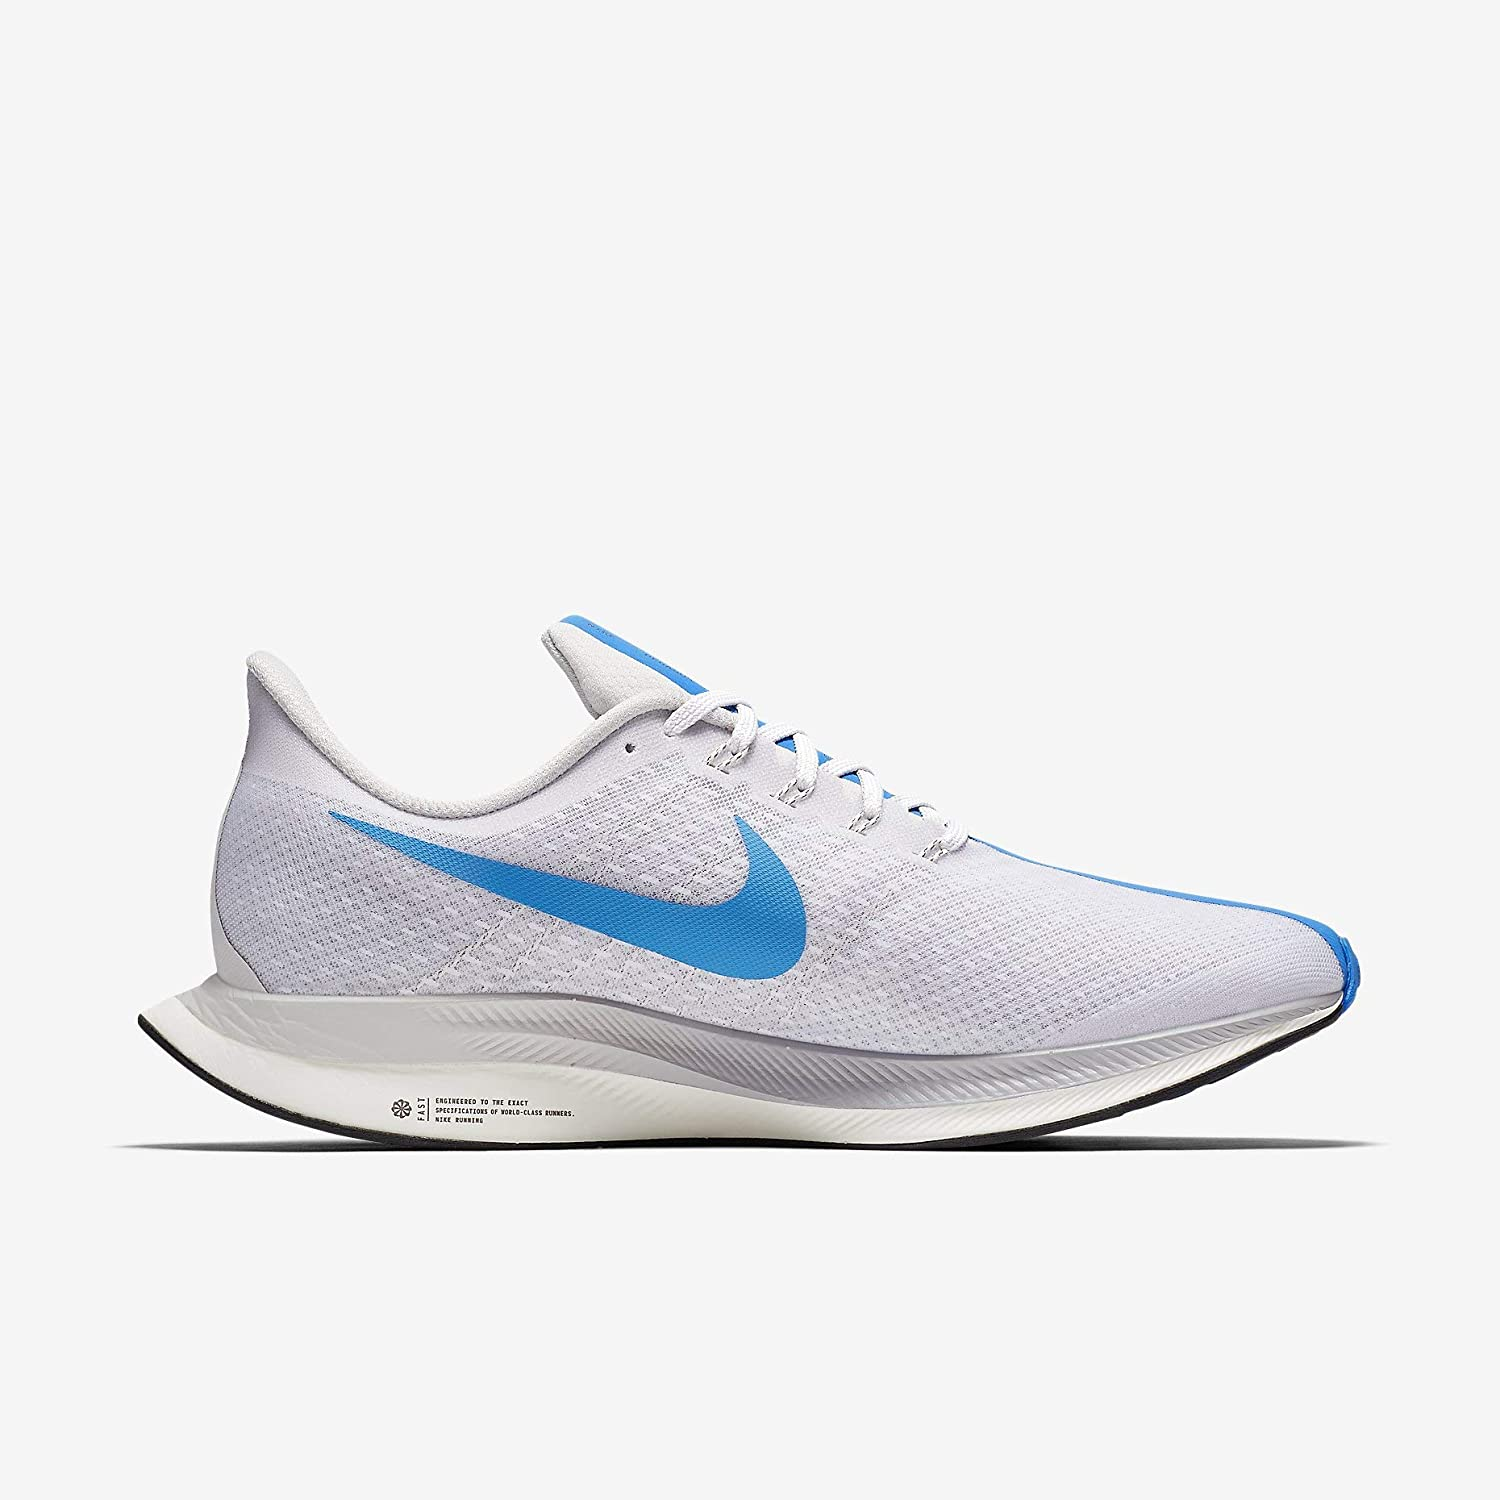 Amazon.com | NIKE Mens Air Zoom Pegasus 35 Turbo Running Shoes (12, White/Blue) | Shoes